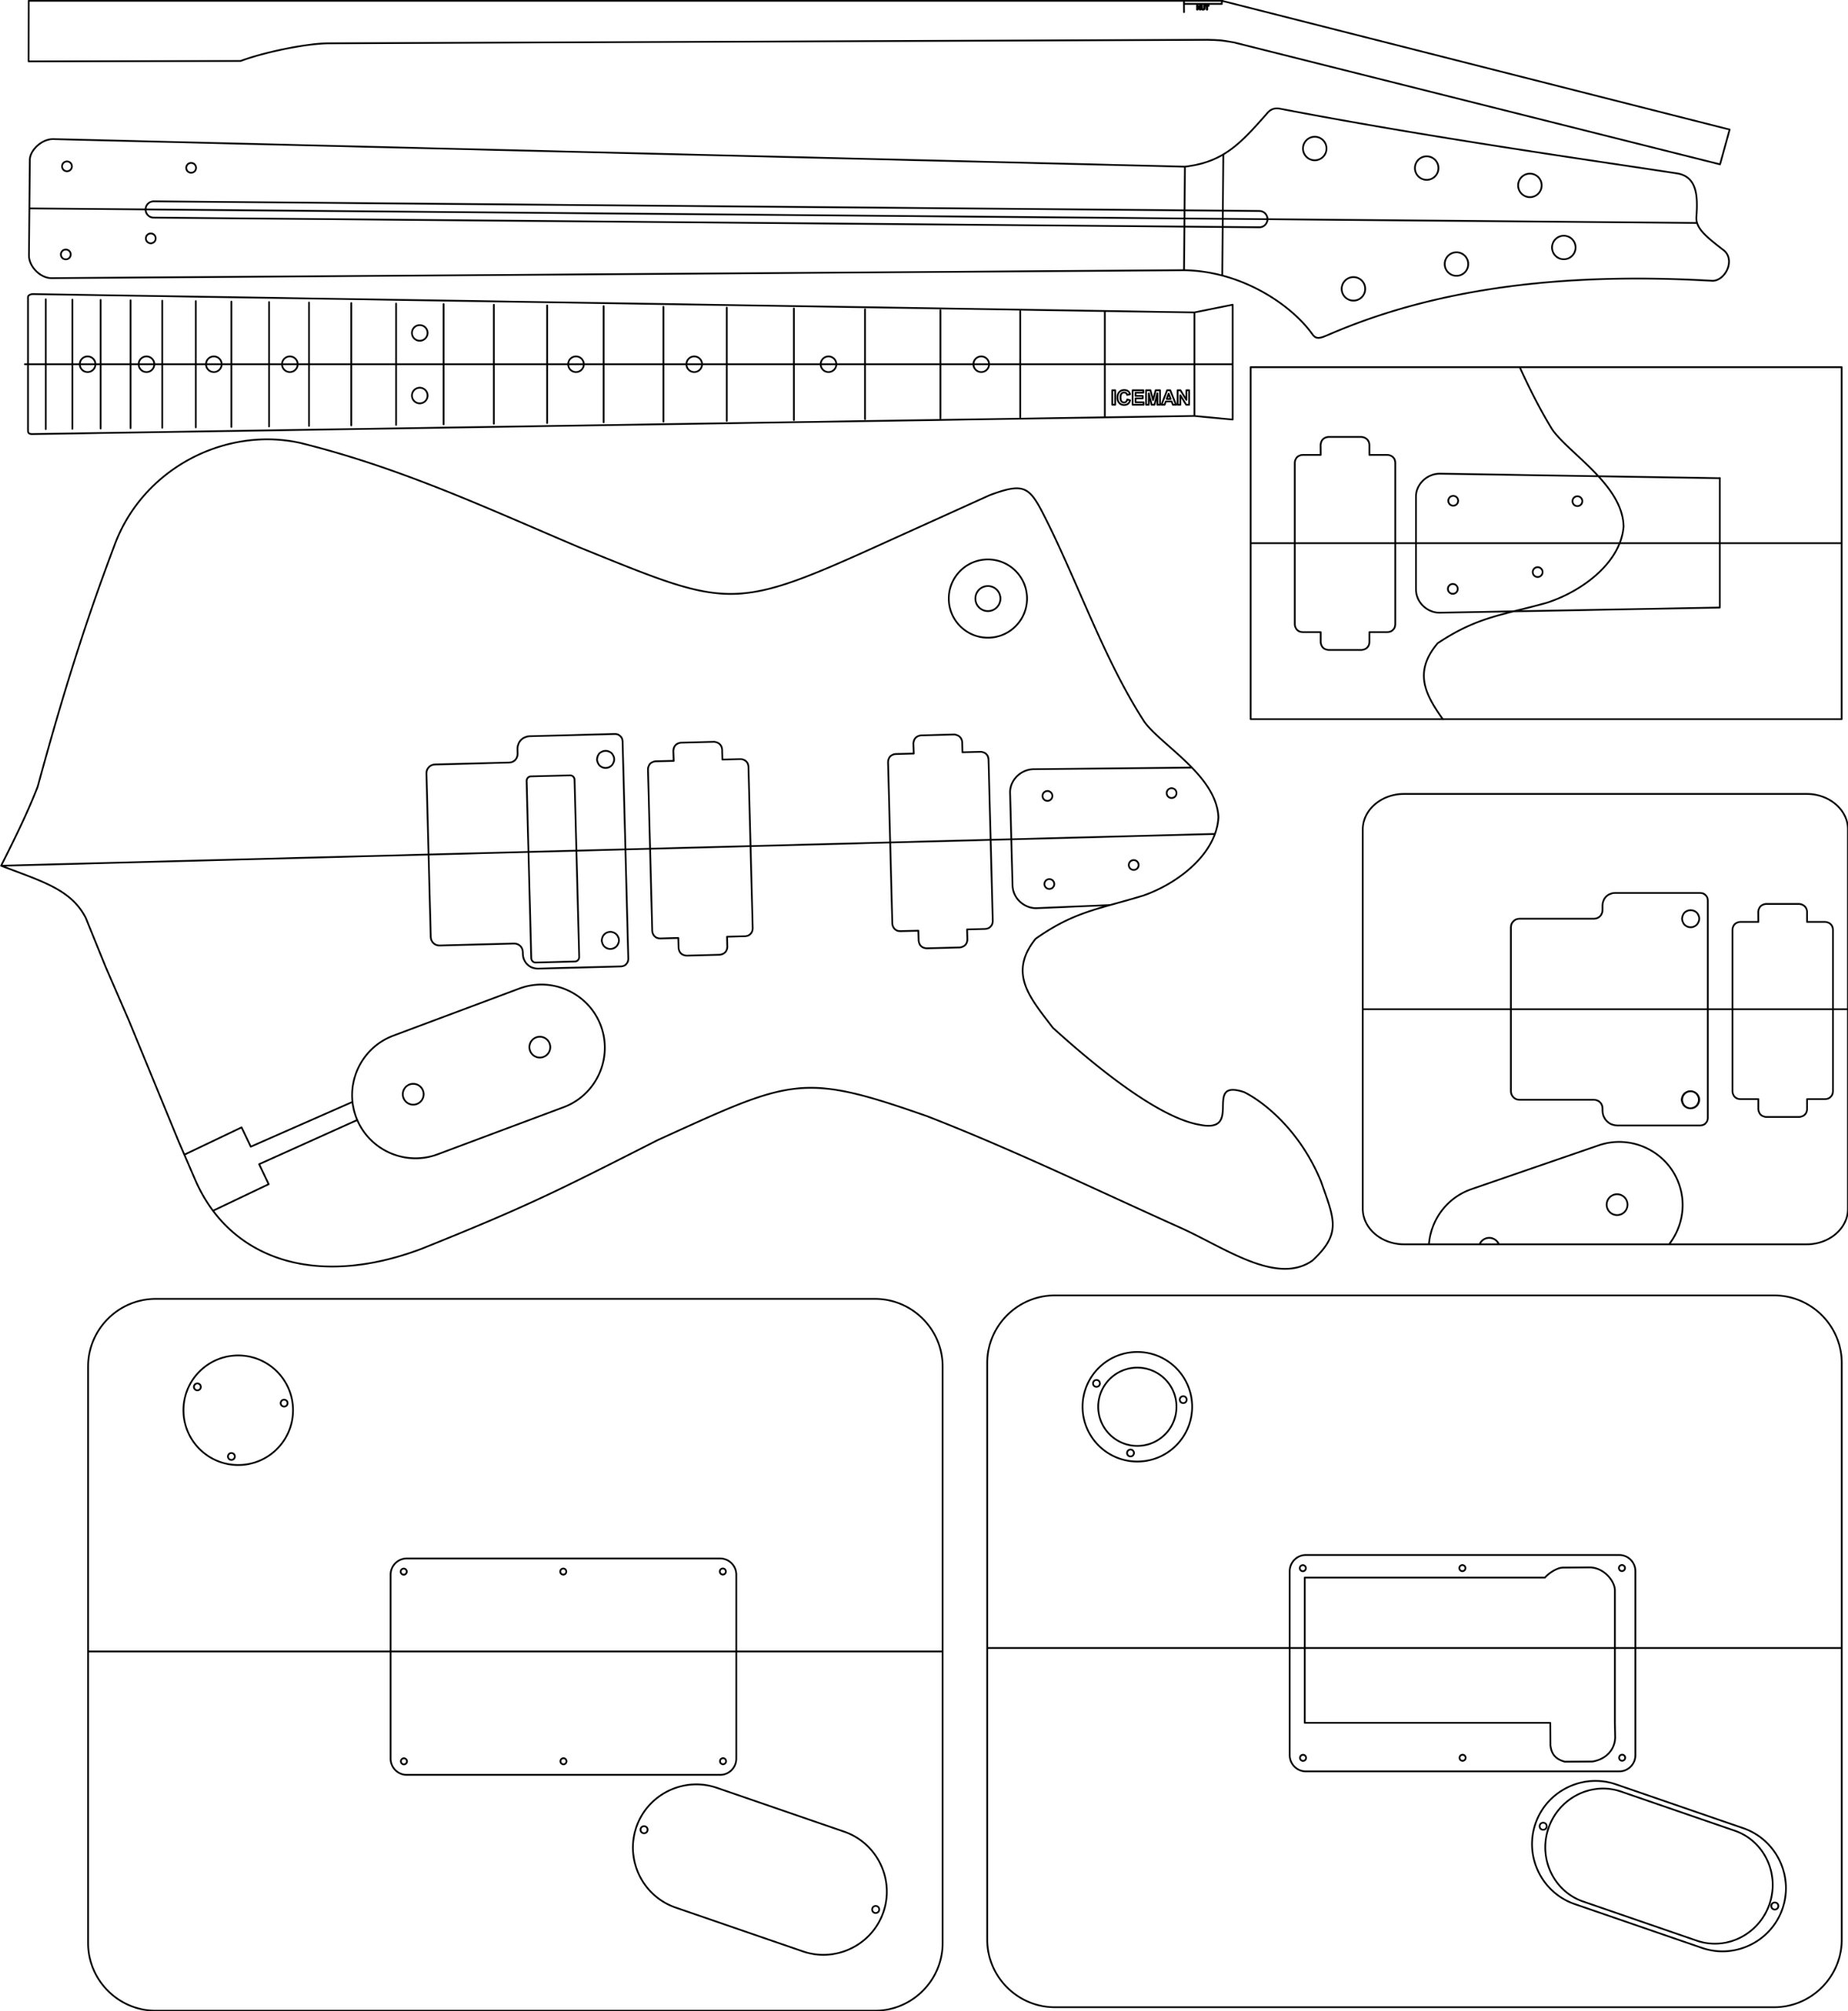 Electric Guitar Layout Template - Iceman